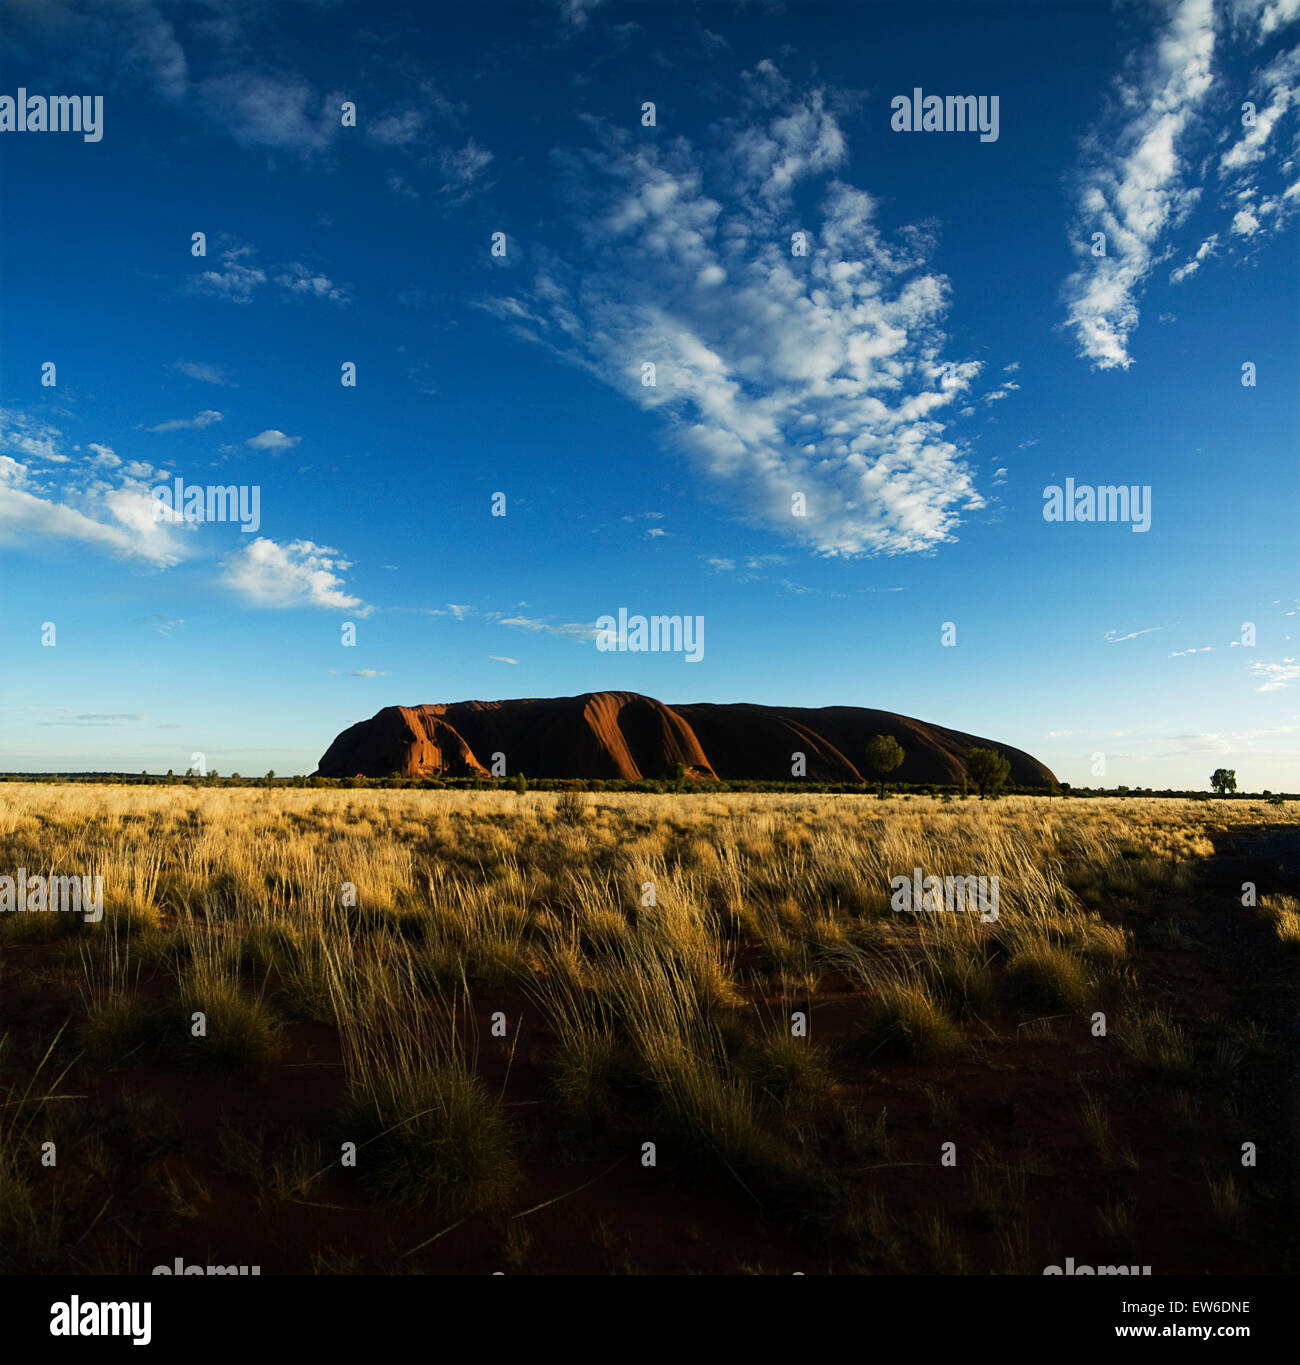 The sunrises over Uluru, Australia's sacred sandstone rock, more commonly known as Ayers Rock. - Stock Image